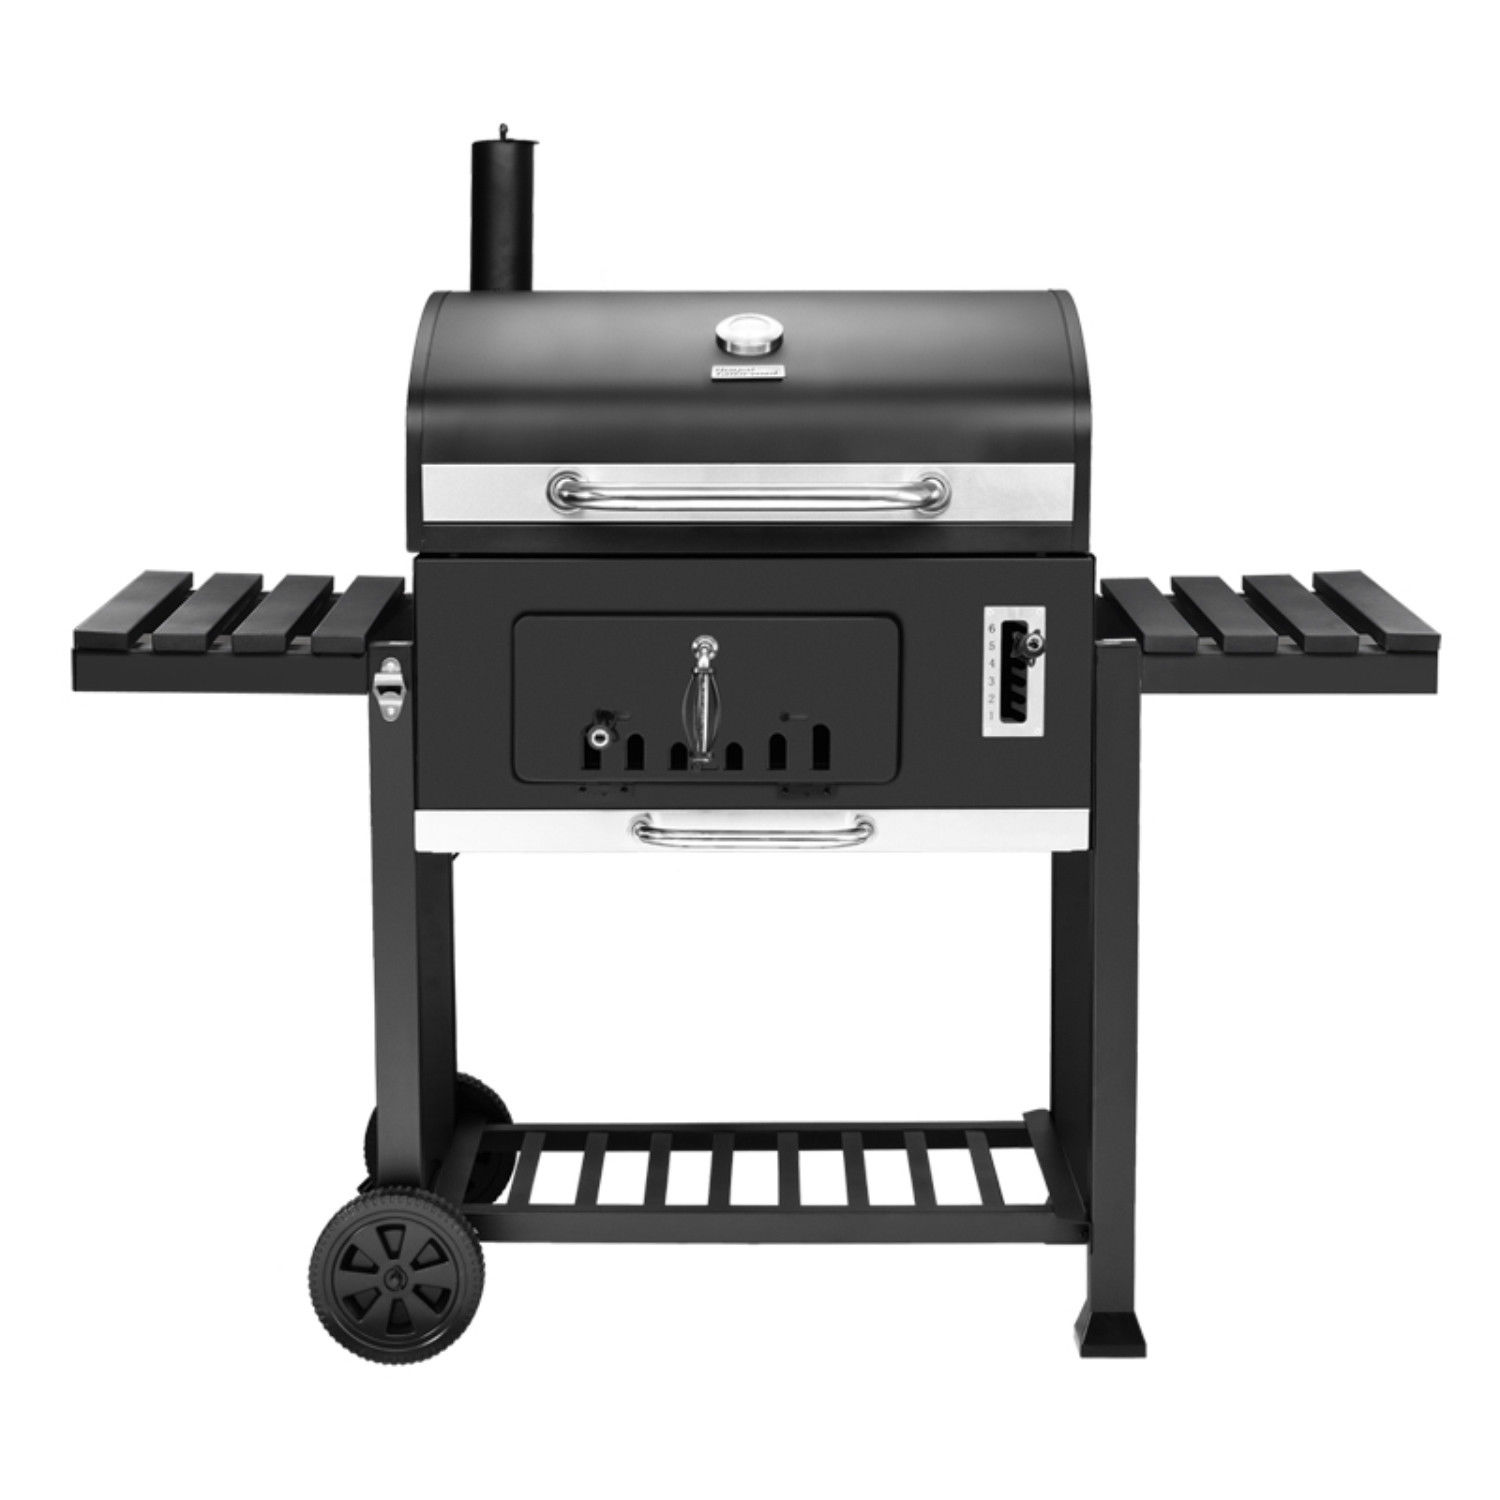 Royal Gourmet CD2030 BBQ Charcoal Grill Barbecue Outdoor by Royal Gourmet Corp